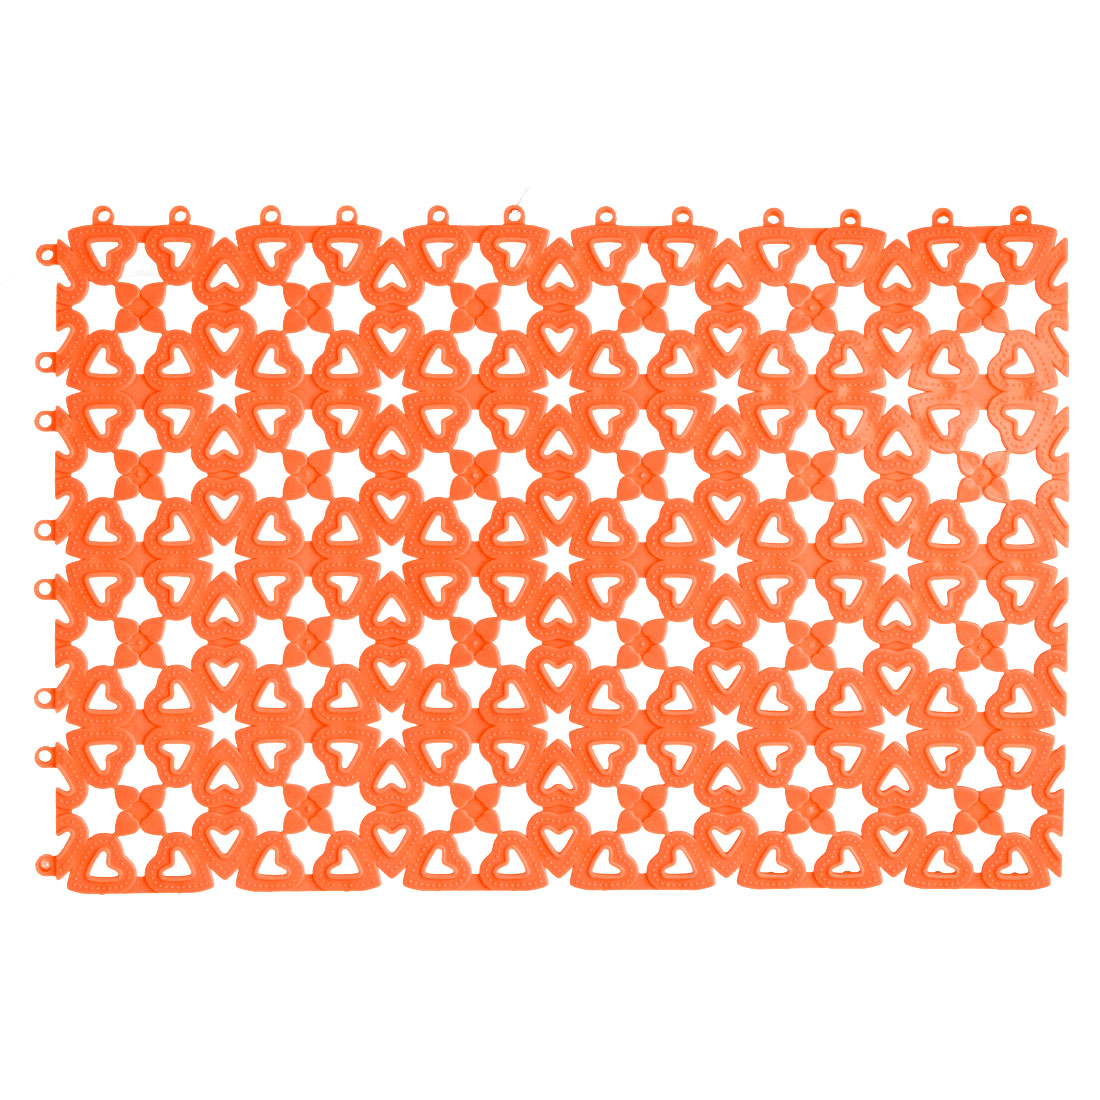 Plastic Free Split Joint Water Resistant Anti-slip Shower Bath Mat Orange